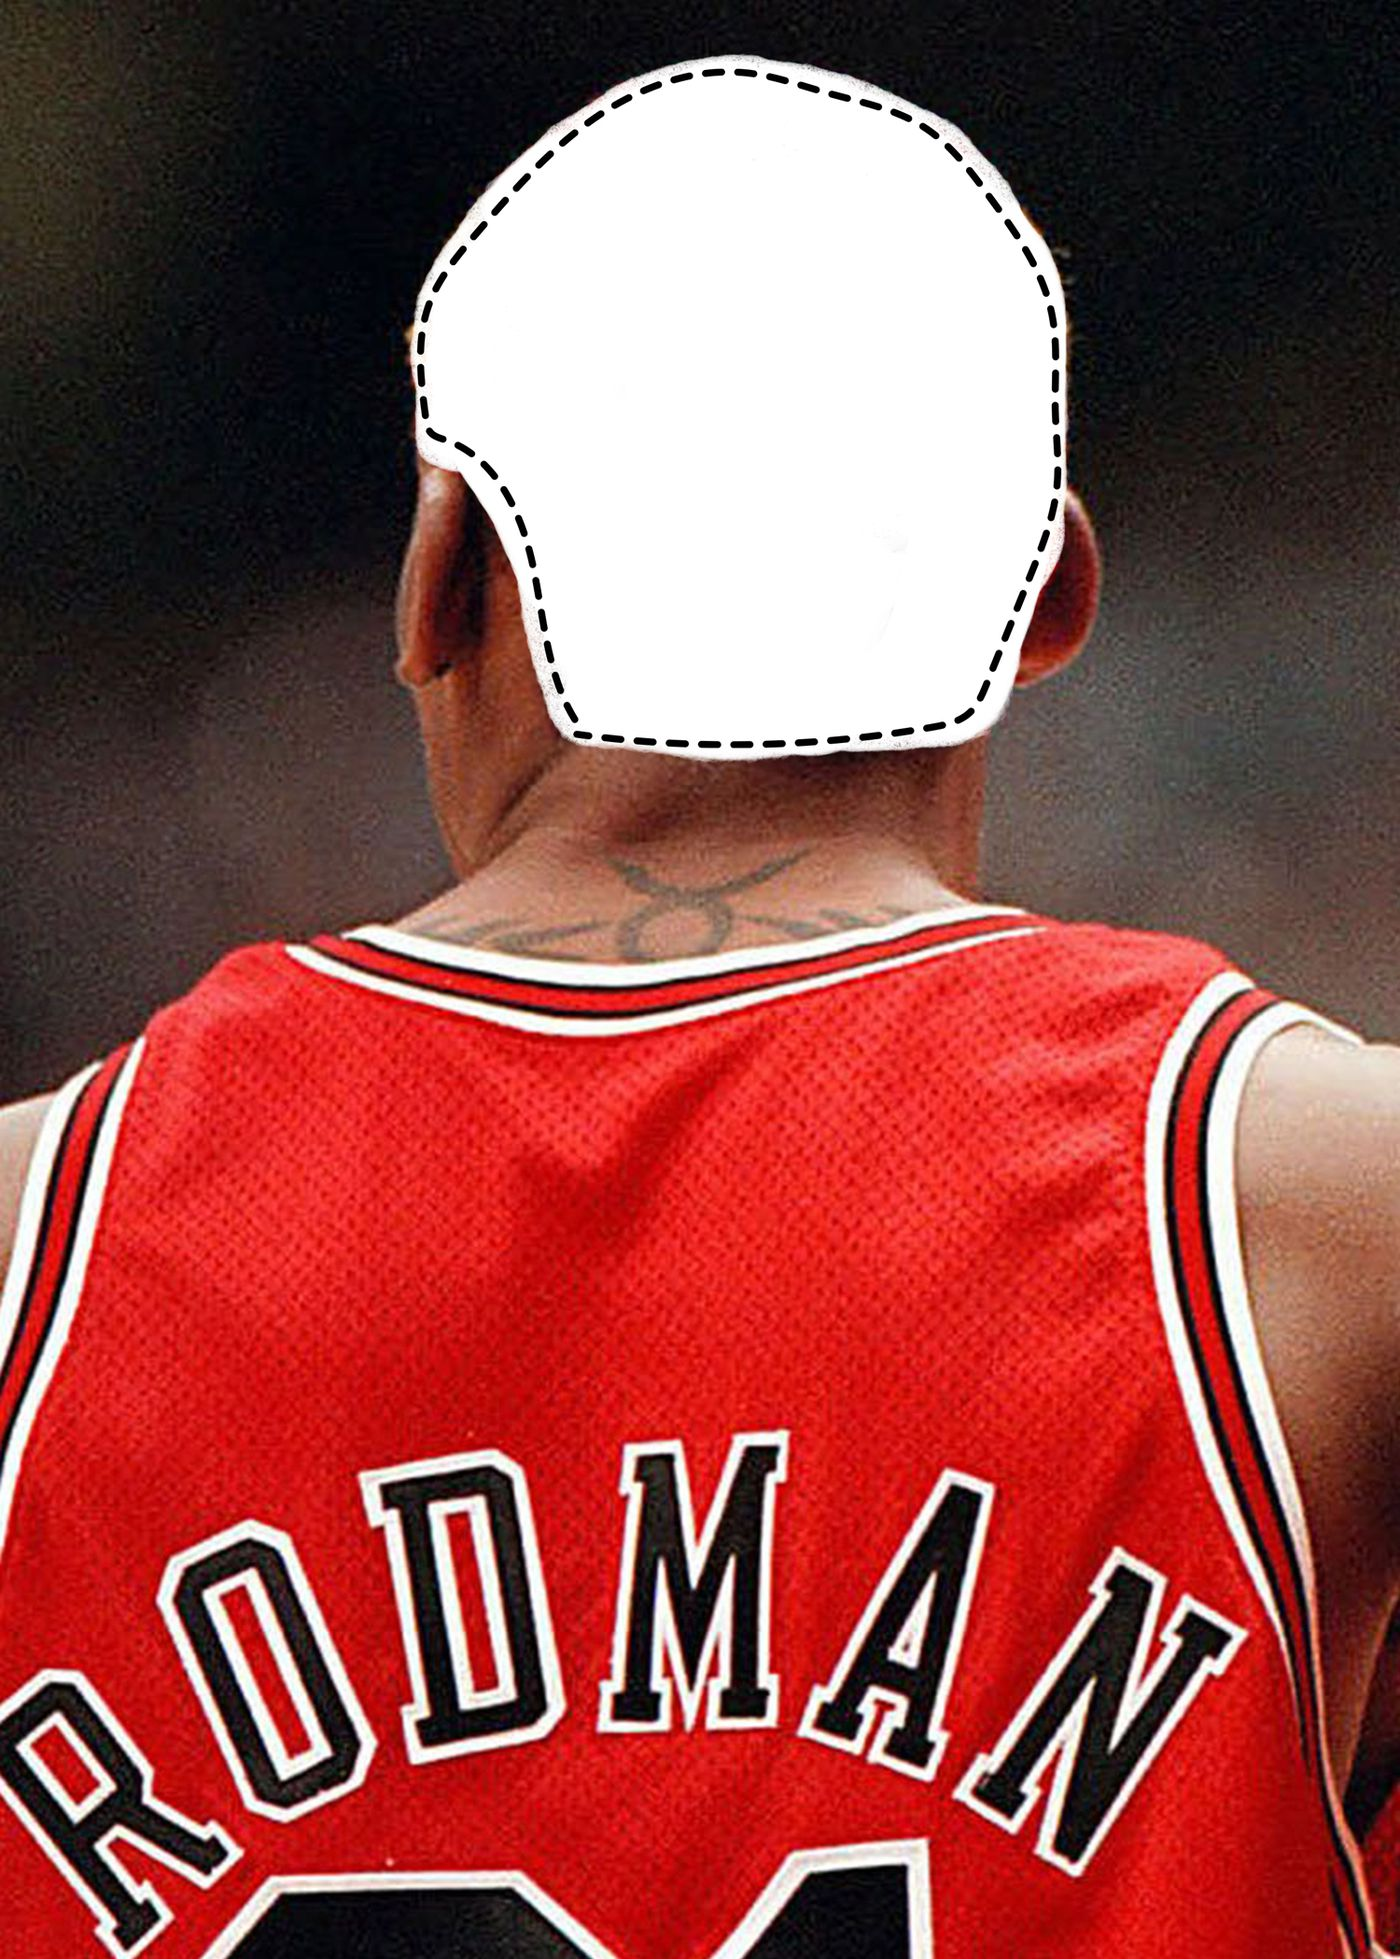 Dennis Rodman Haircut : dennis, rodman, haircut, Create, Dennis, Rodman, Hairstyle, Little, Coloring, SBNation.com